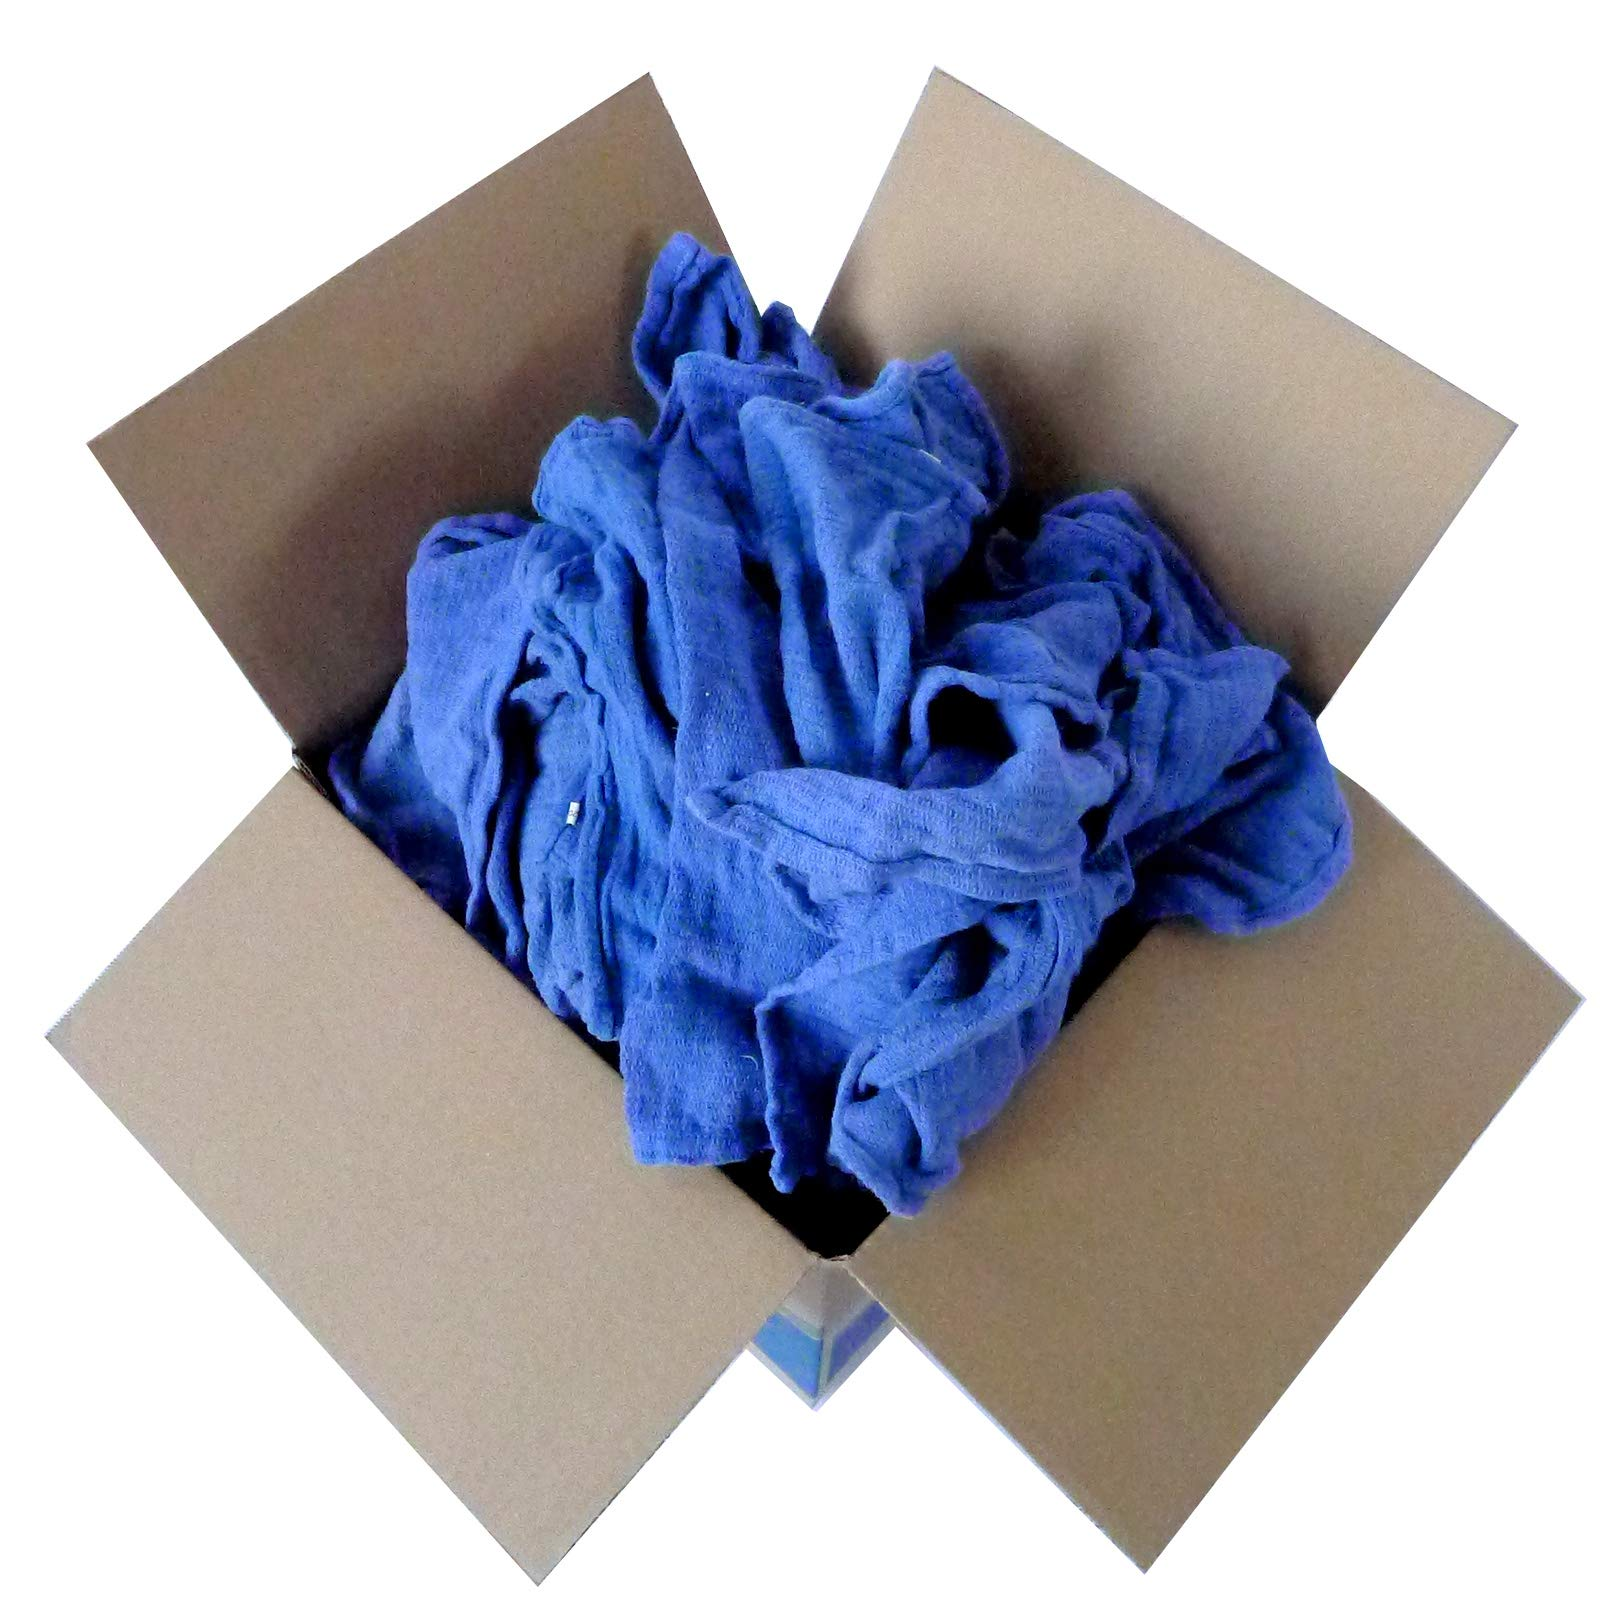 Recycled Blue Surgical Towel Rags - 10 Pound Box - A Perfect Non-Streaking No Lint Towel by A&A Wiping Cloth (Image #5)